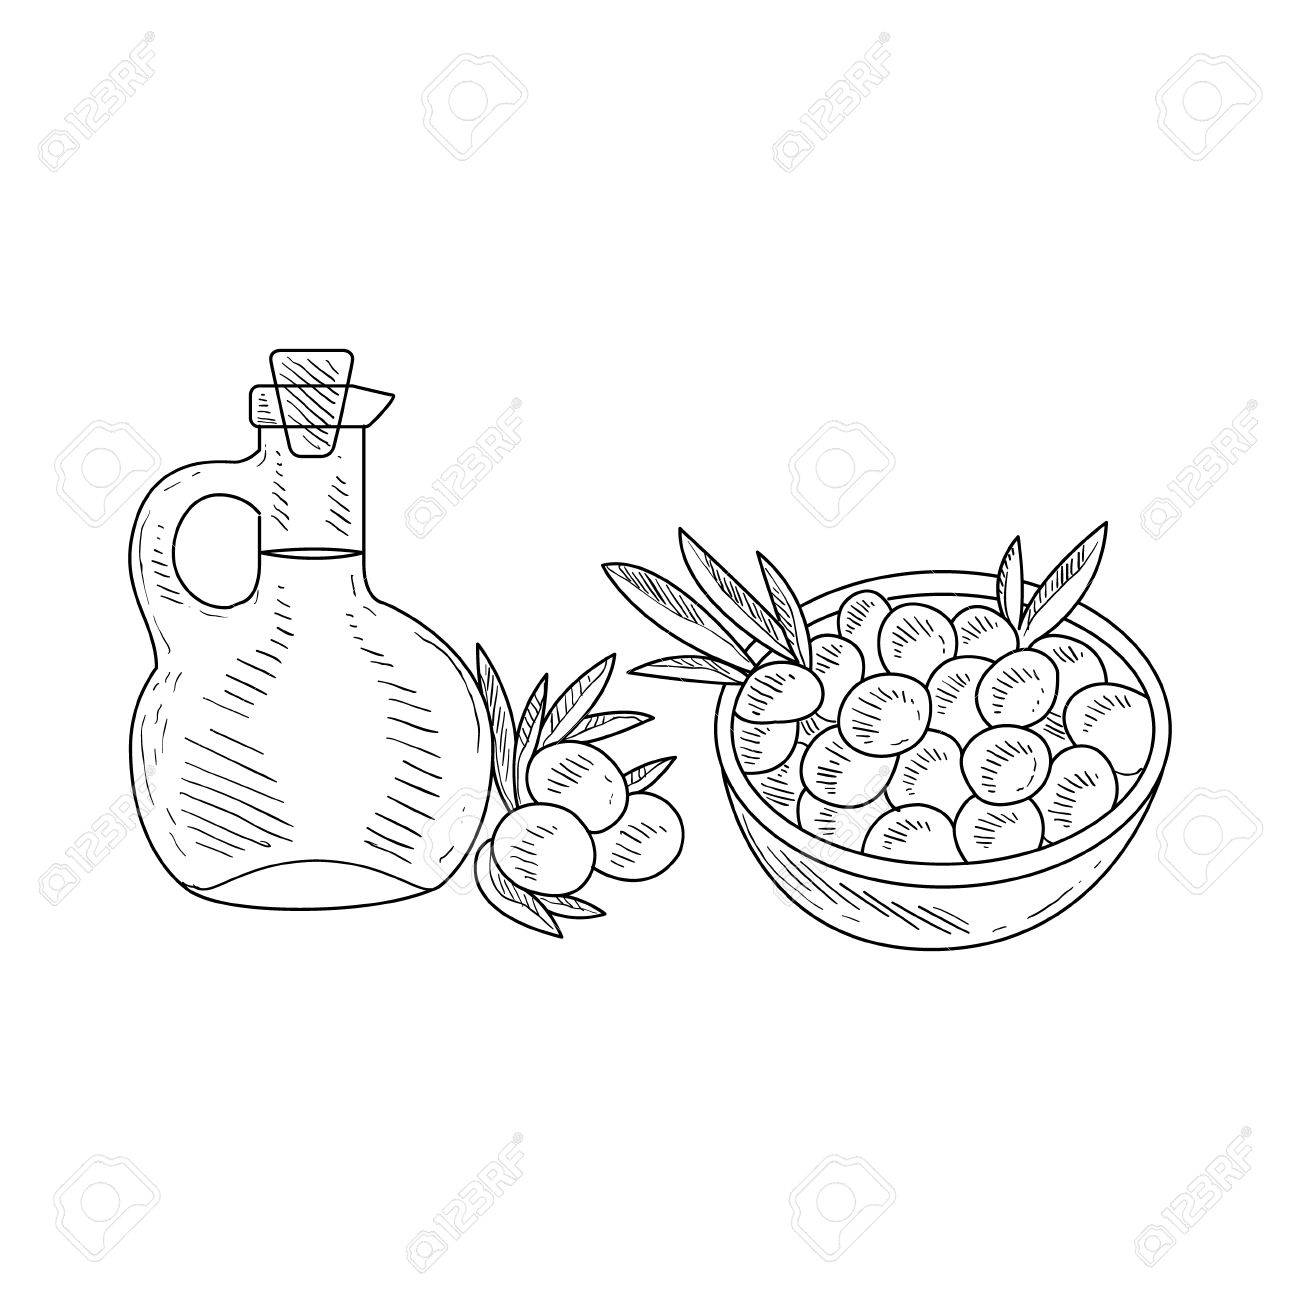 Olives and jug of olive oil hand drawn realistic detailed sketch in classy simple pencil style